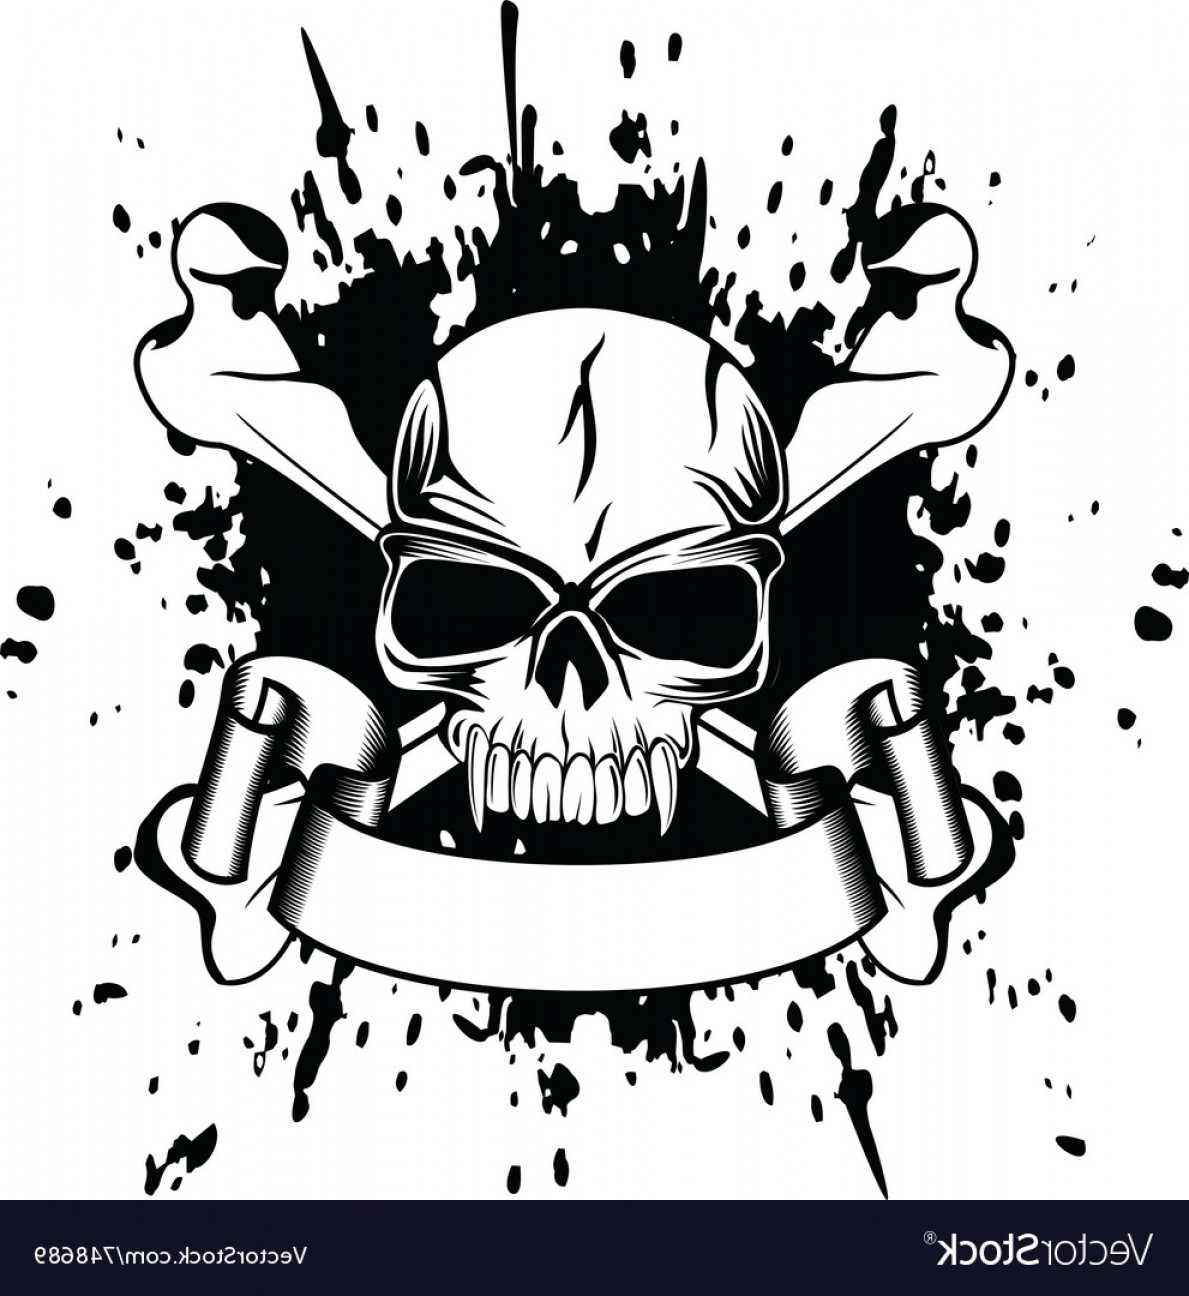 Skull ND Crossbones Vector: Skull And Crossed Bones Vector